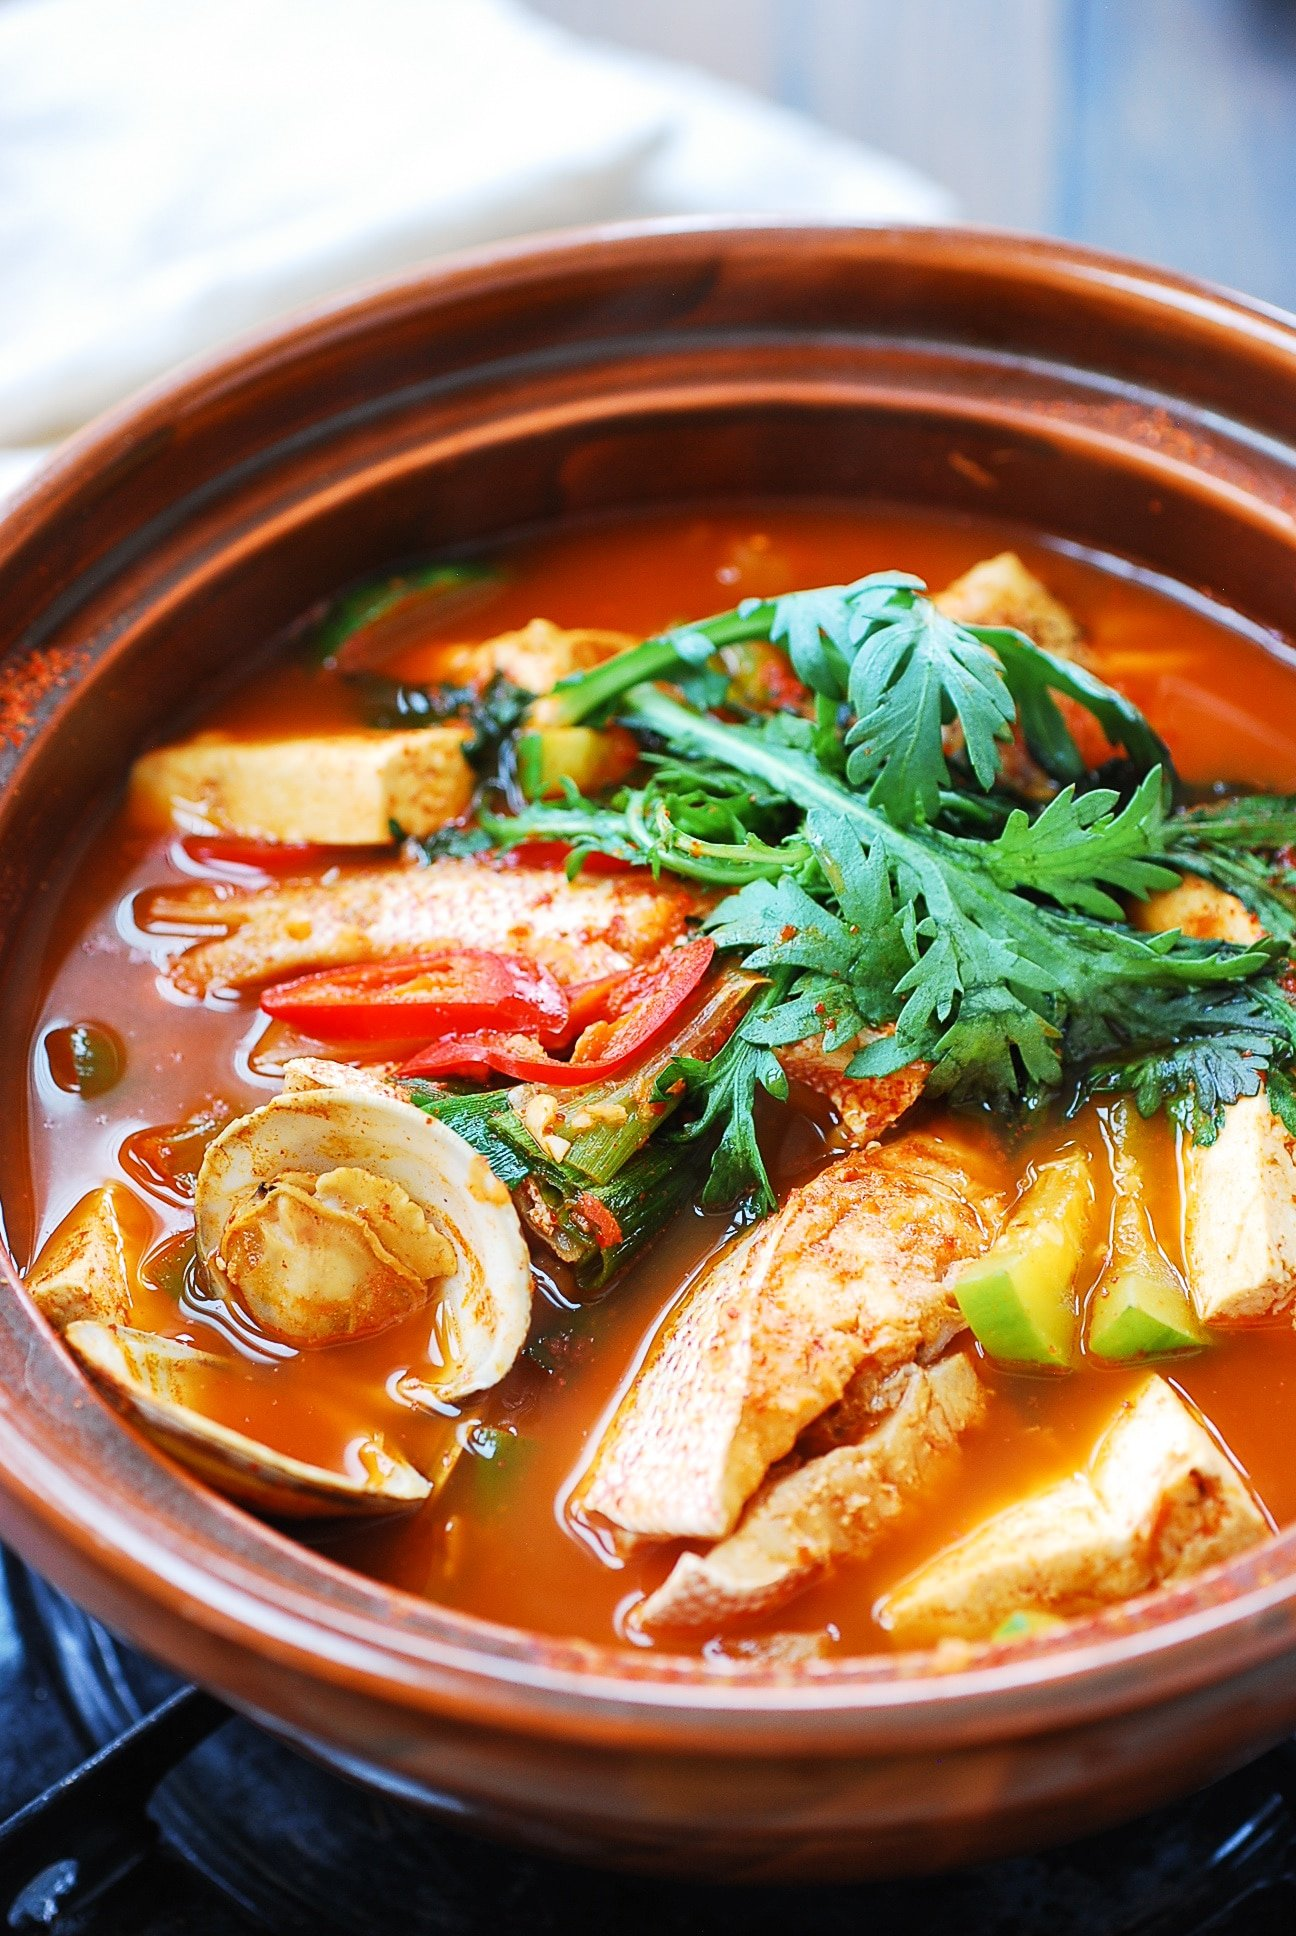 DSC 2723 1 - Domi Maeuntang (Spicy Fish Stew with Red Snapper)